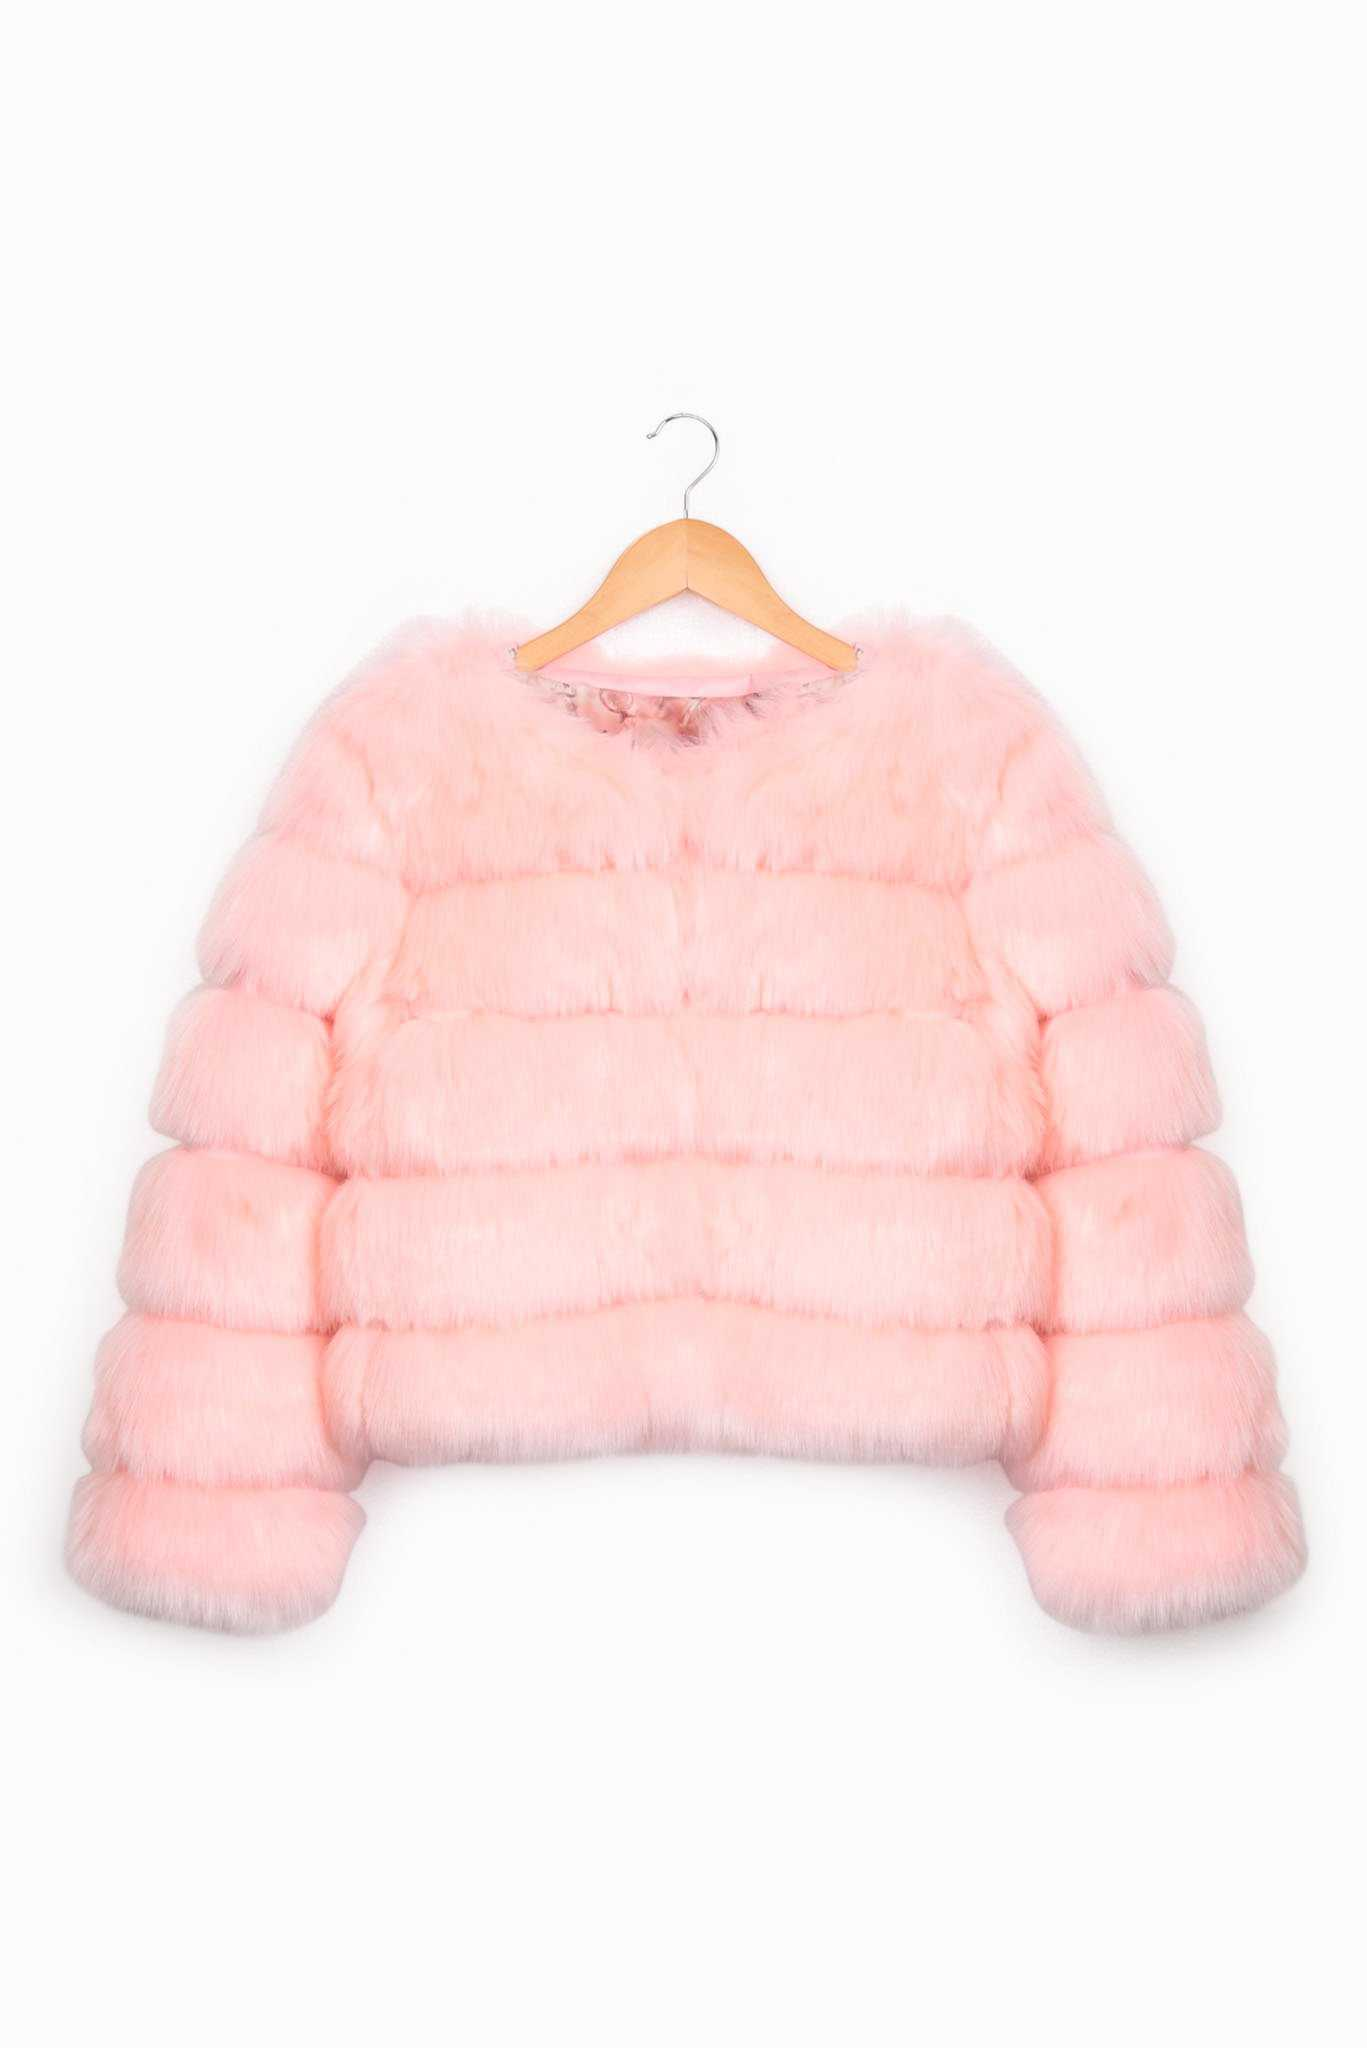 Faux Fur Jacket - Pink | Raw Orange